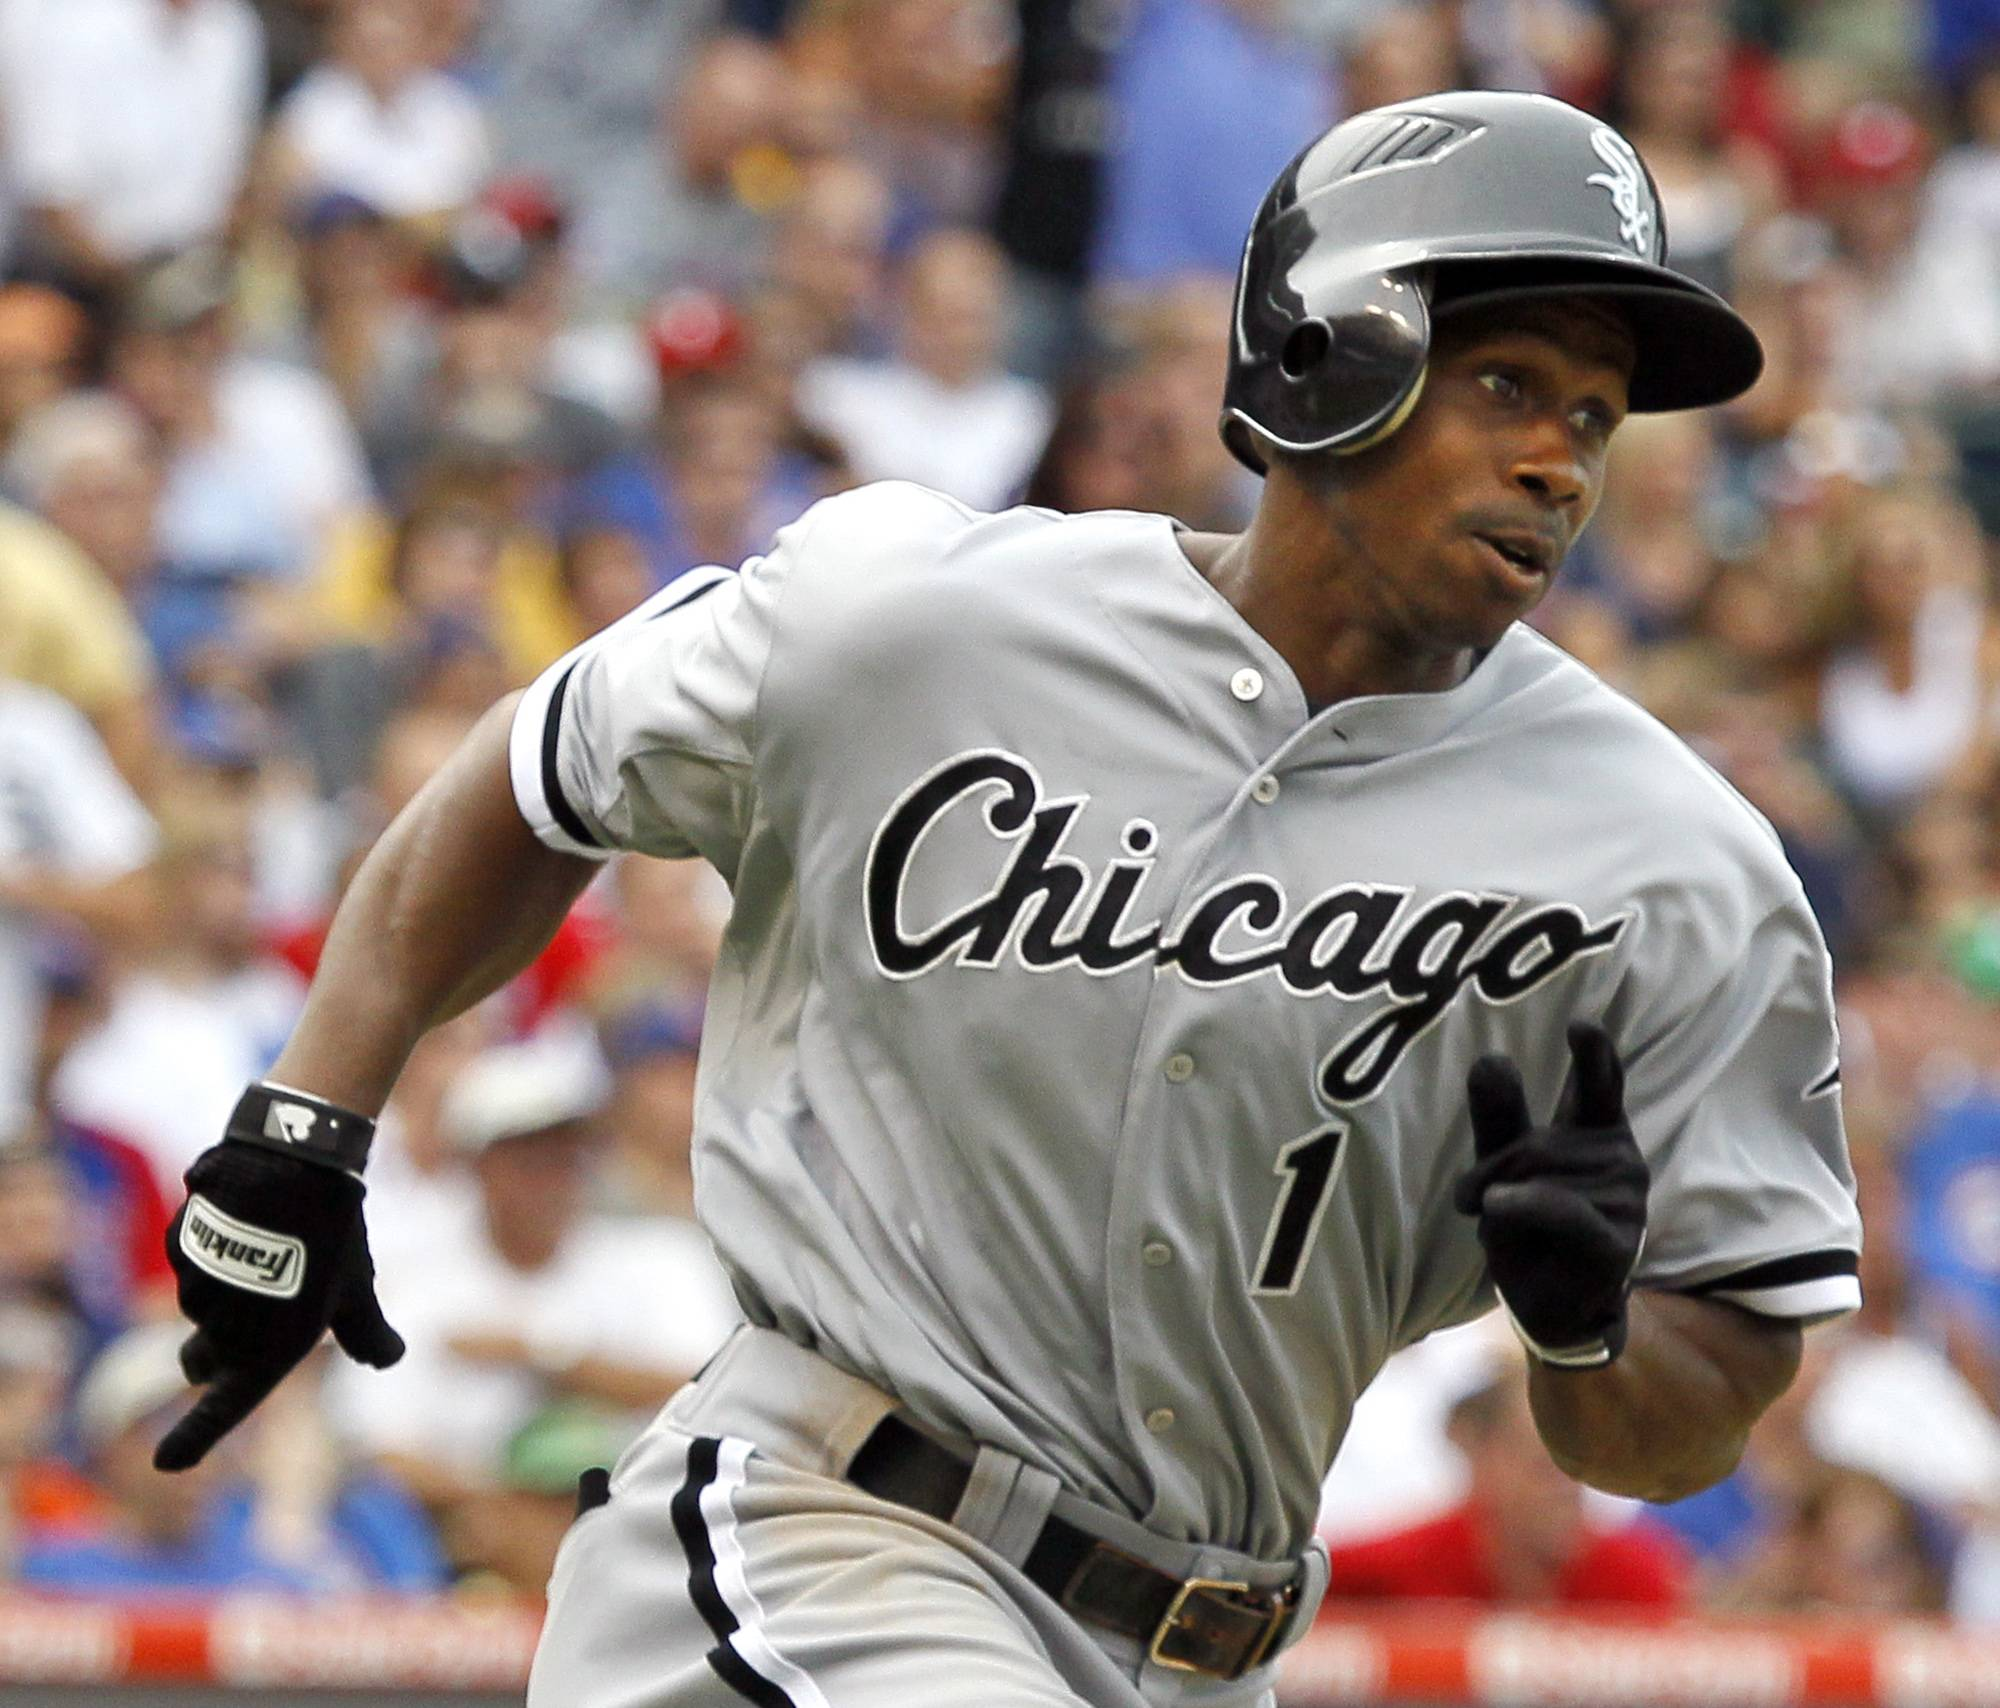 Juan Pierre rounds first after hitting a two-run triple off Cubs starting pitcher Randy Wells, scoring Alex Rios and Adam Dunn, during the seventh inning Friday at Wrigley Field.